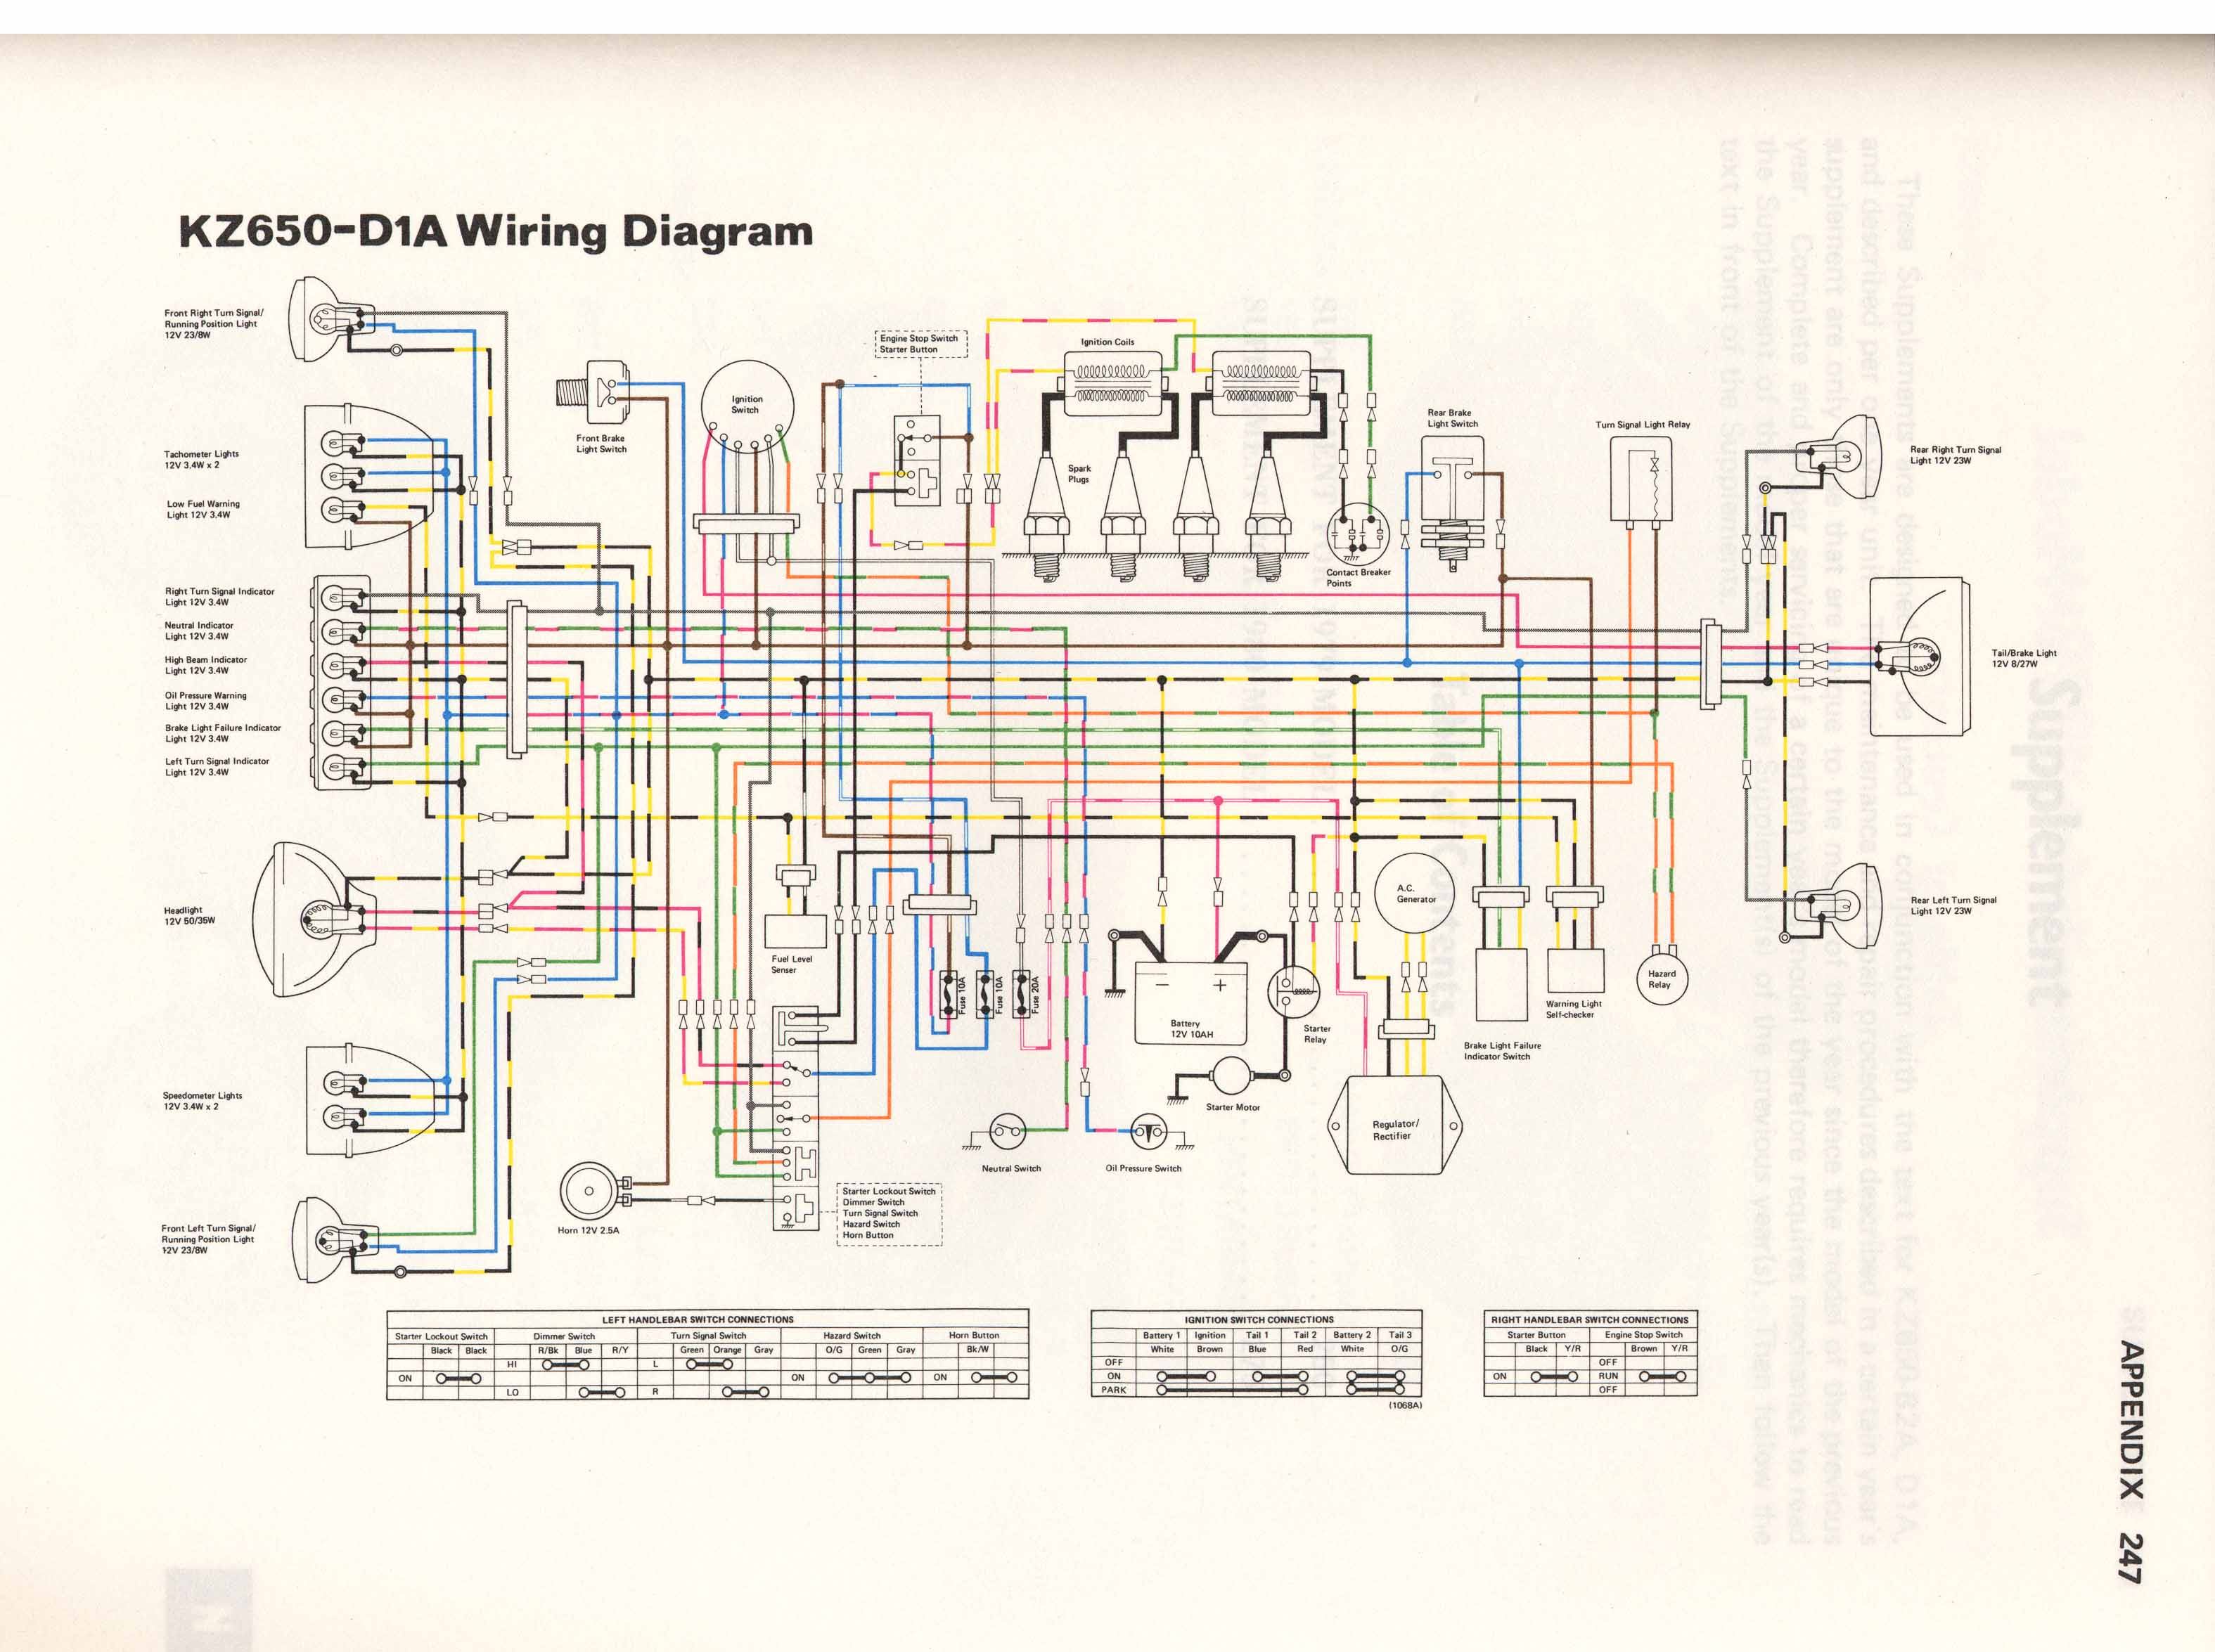 KZ650 D1A kz650 info wiring diagrams 1980 Kawasaki KZ750 Wiring-Diagram at webbmarketing.co